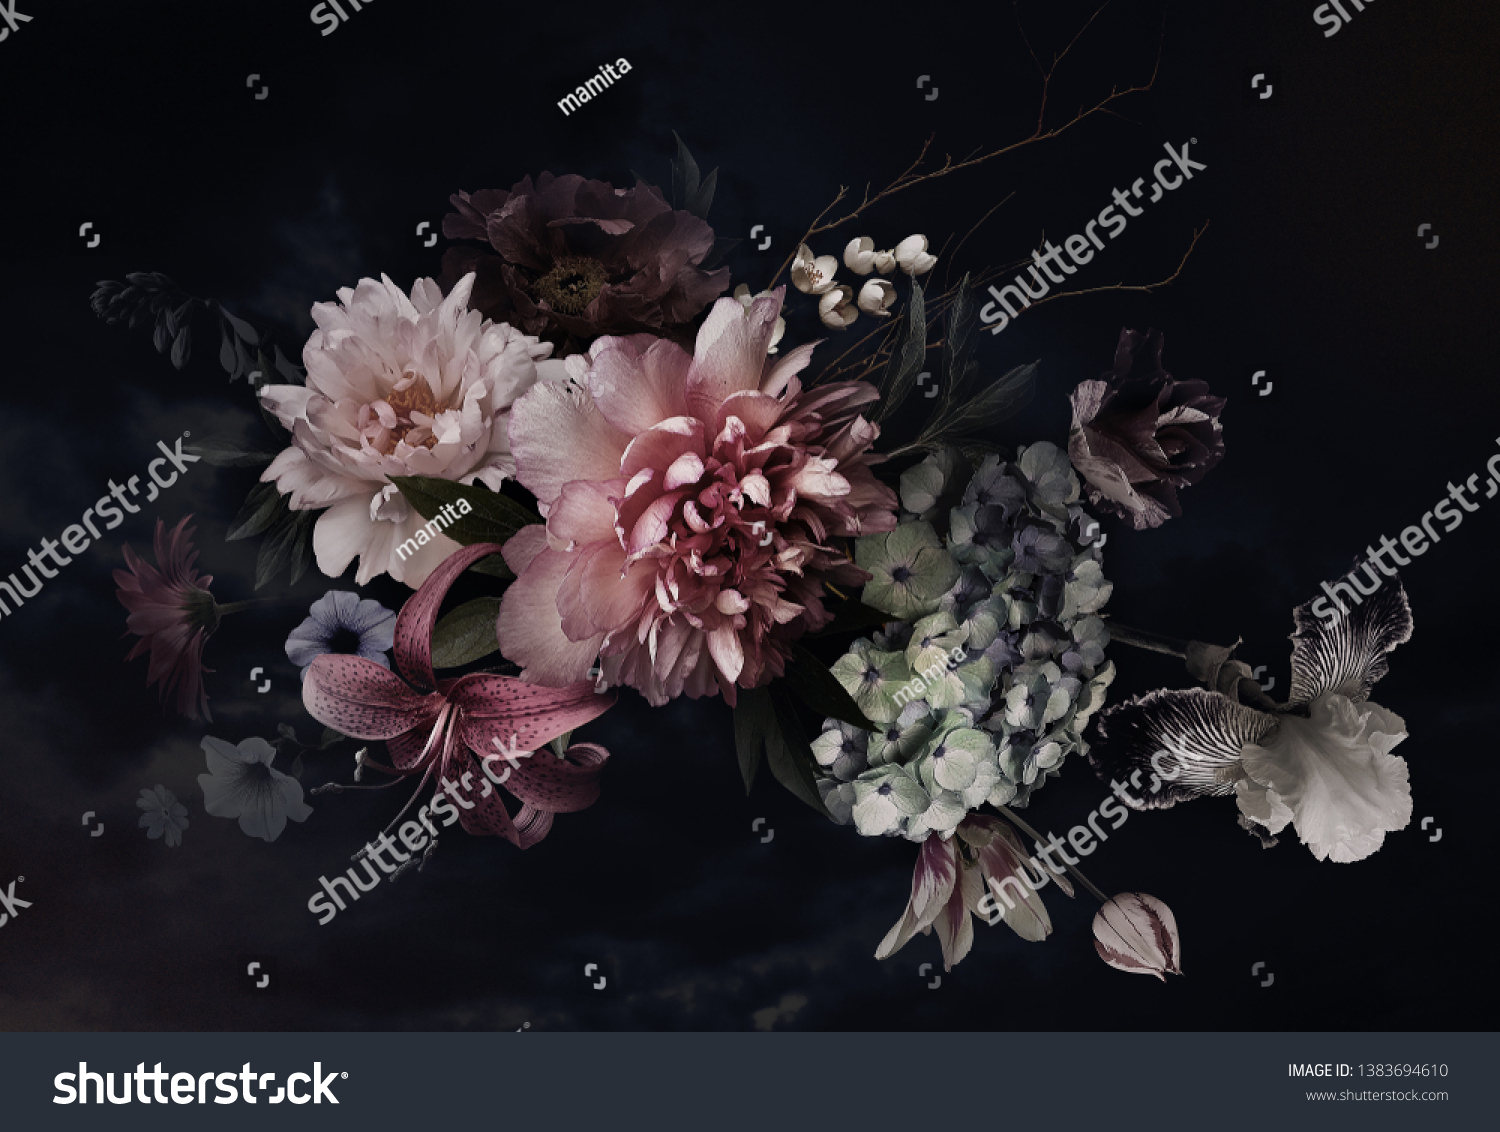 Vintage flowers. Peonies, tulips, lily, hydrangea on black. Floral background. Baroque style floristic illustration. #1383694610